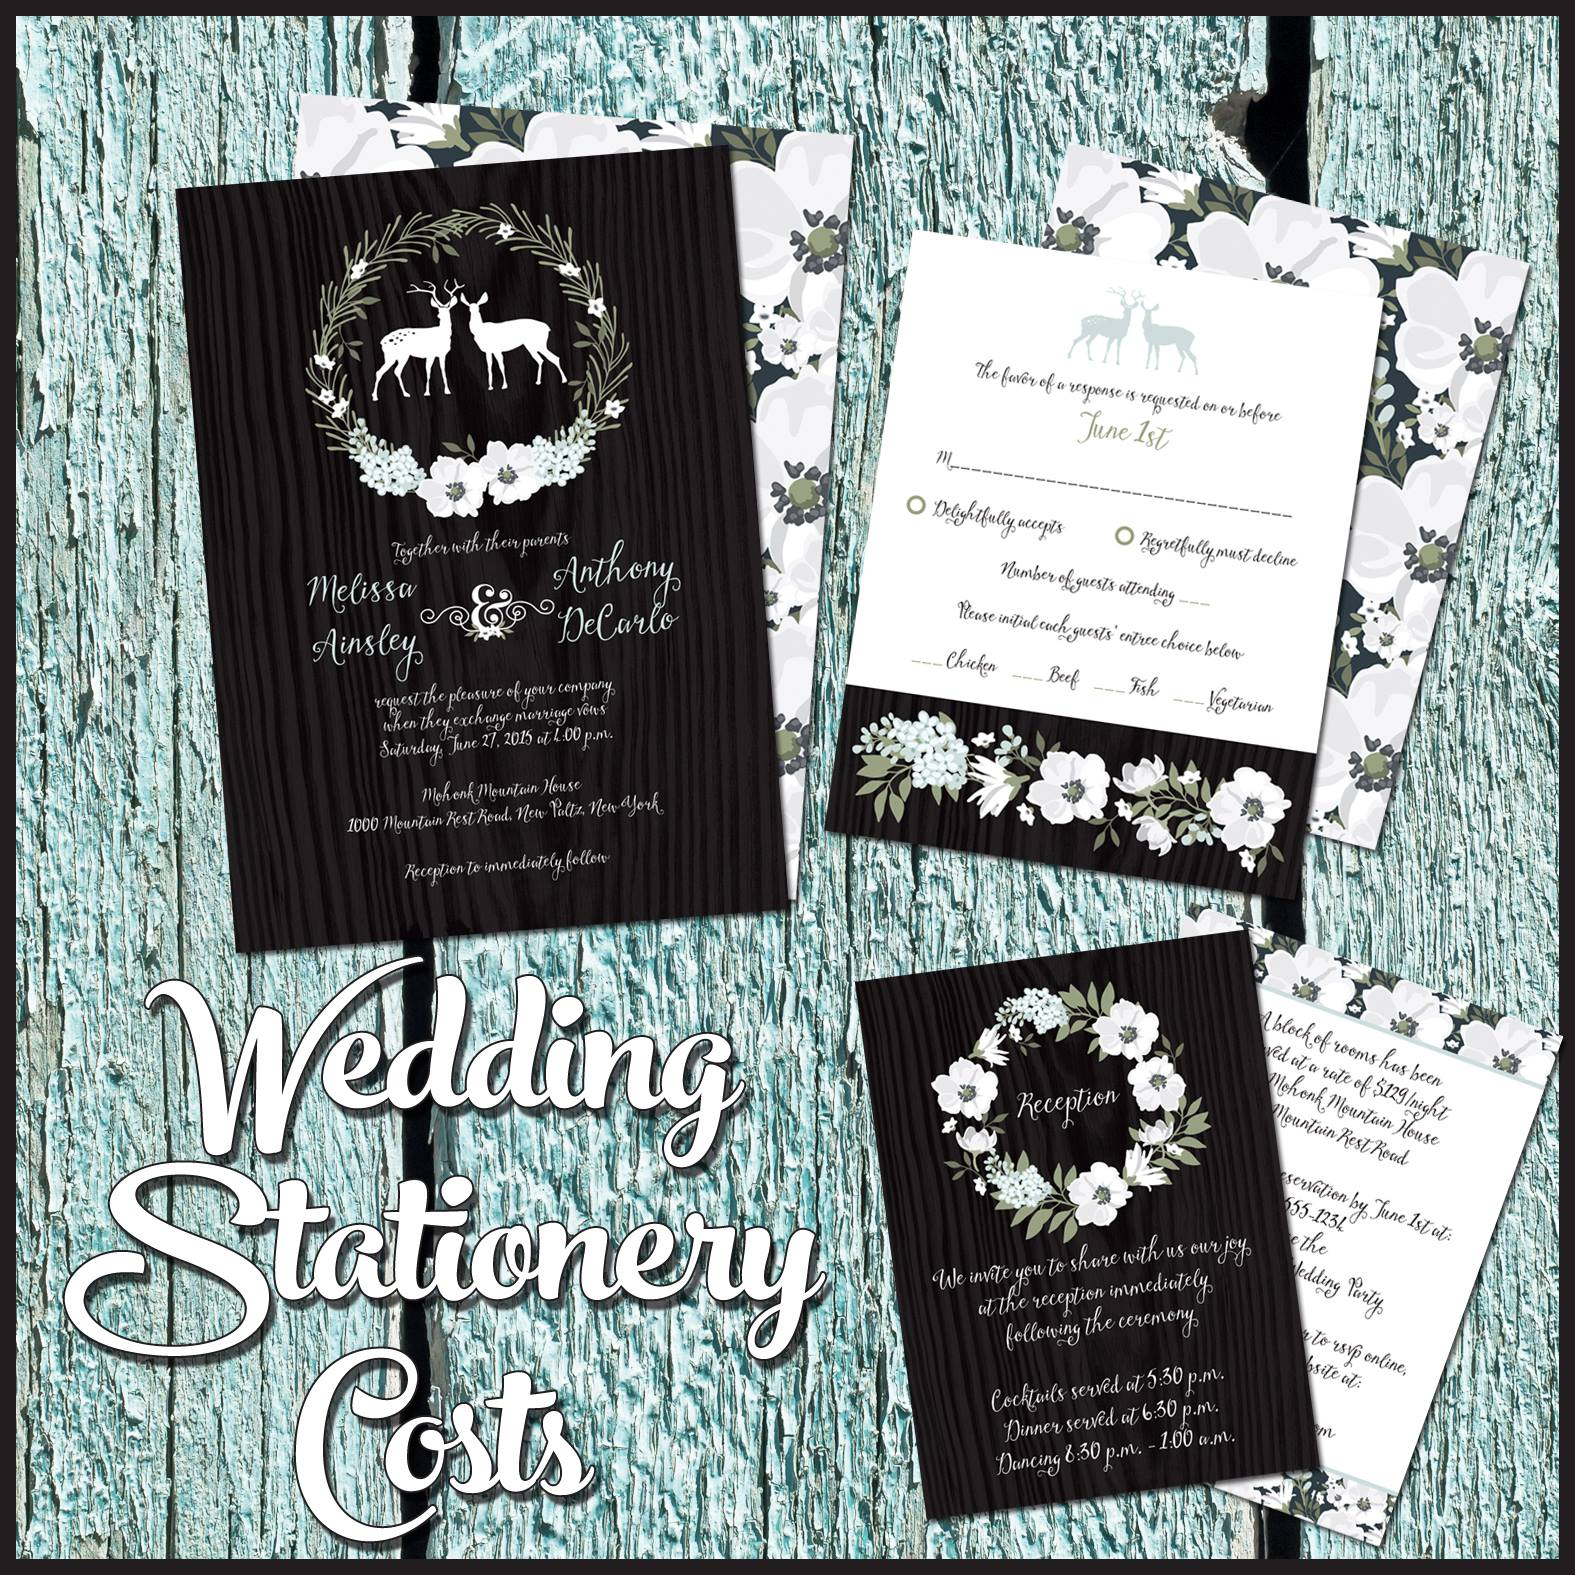 Party Simplicity How Much Should I Spend On Wedding Invitations